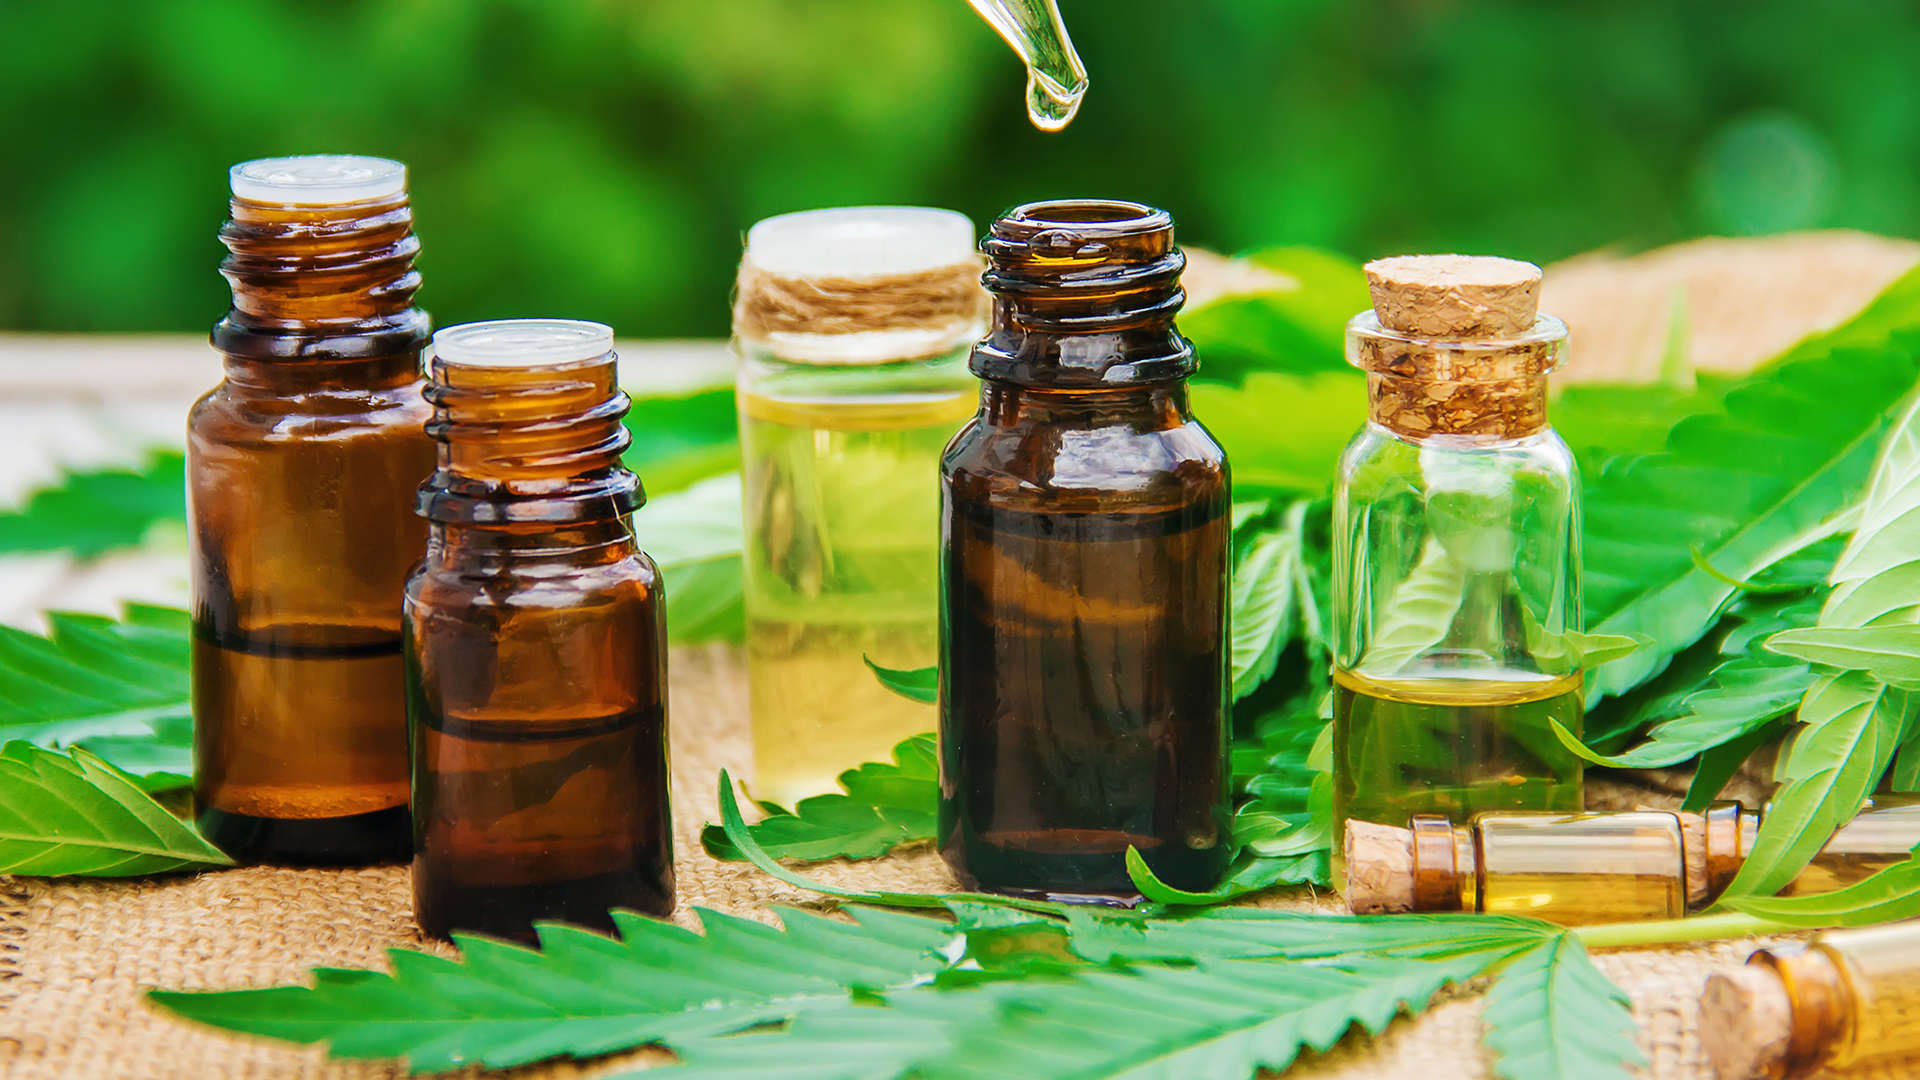 What to look for in CBD oil when buying